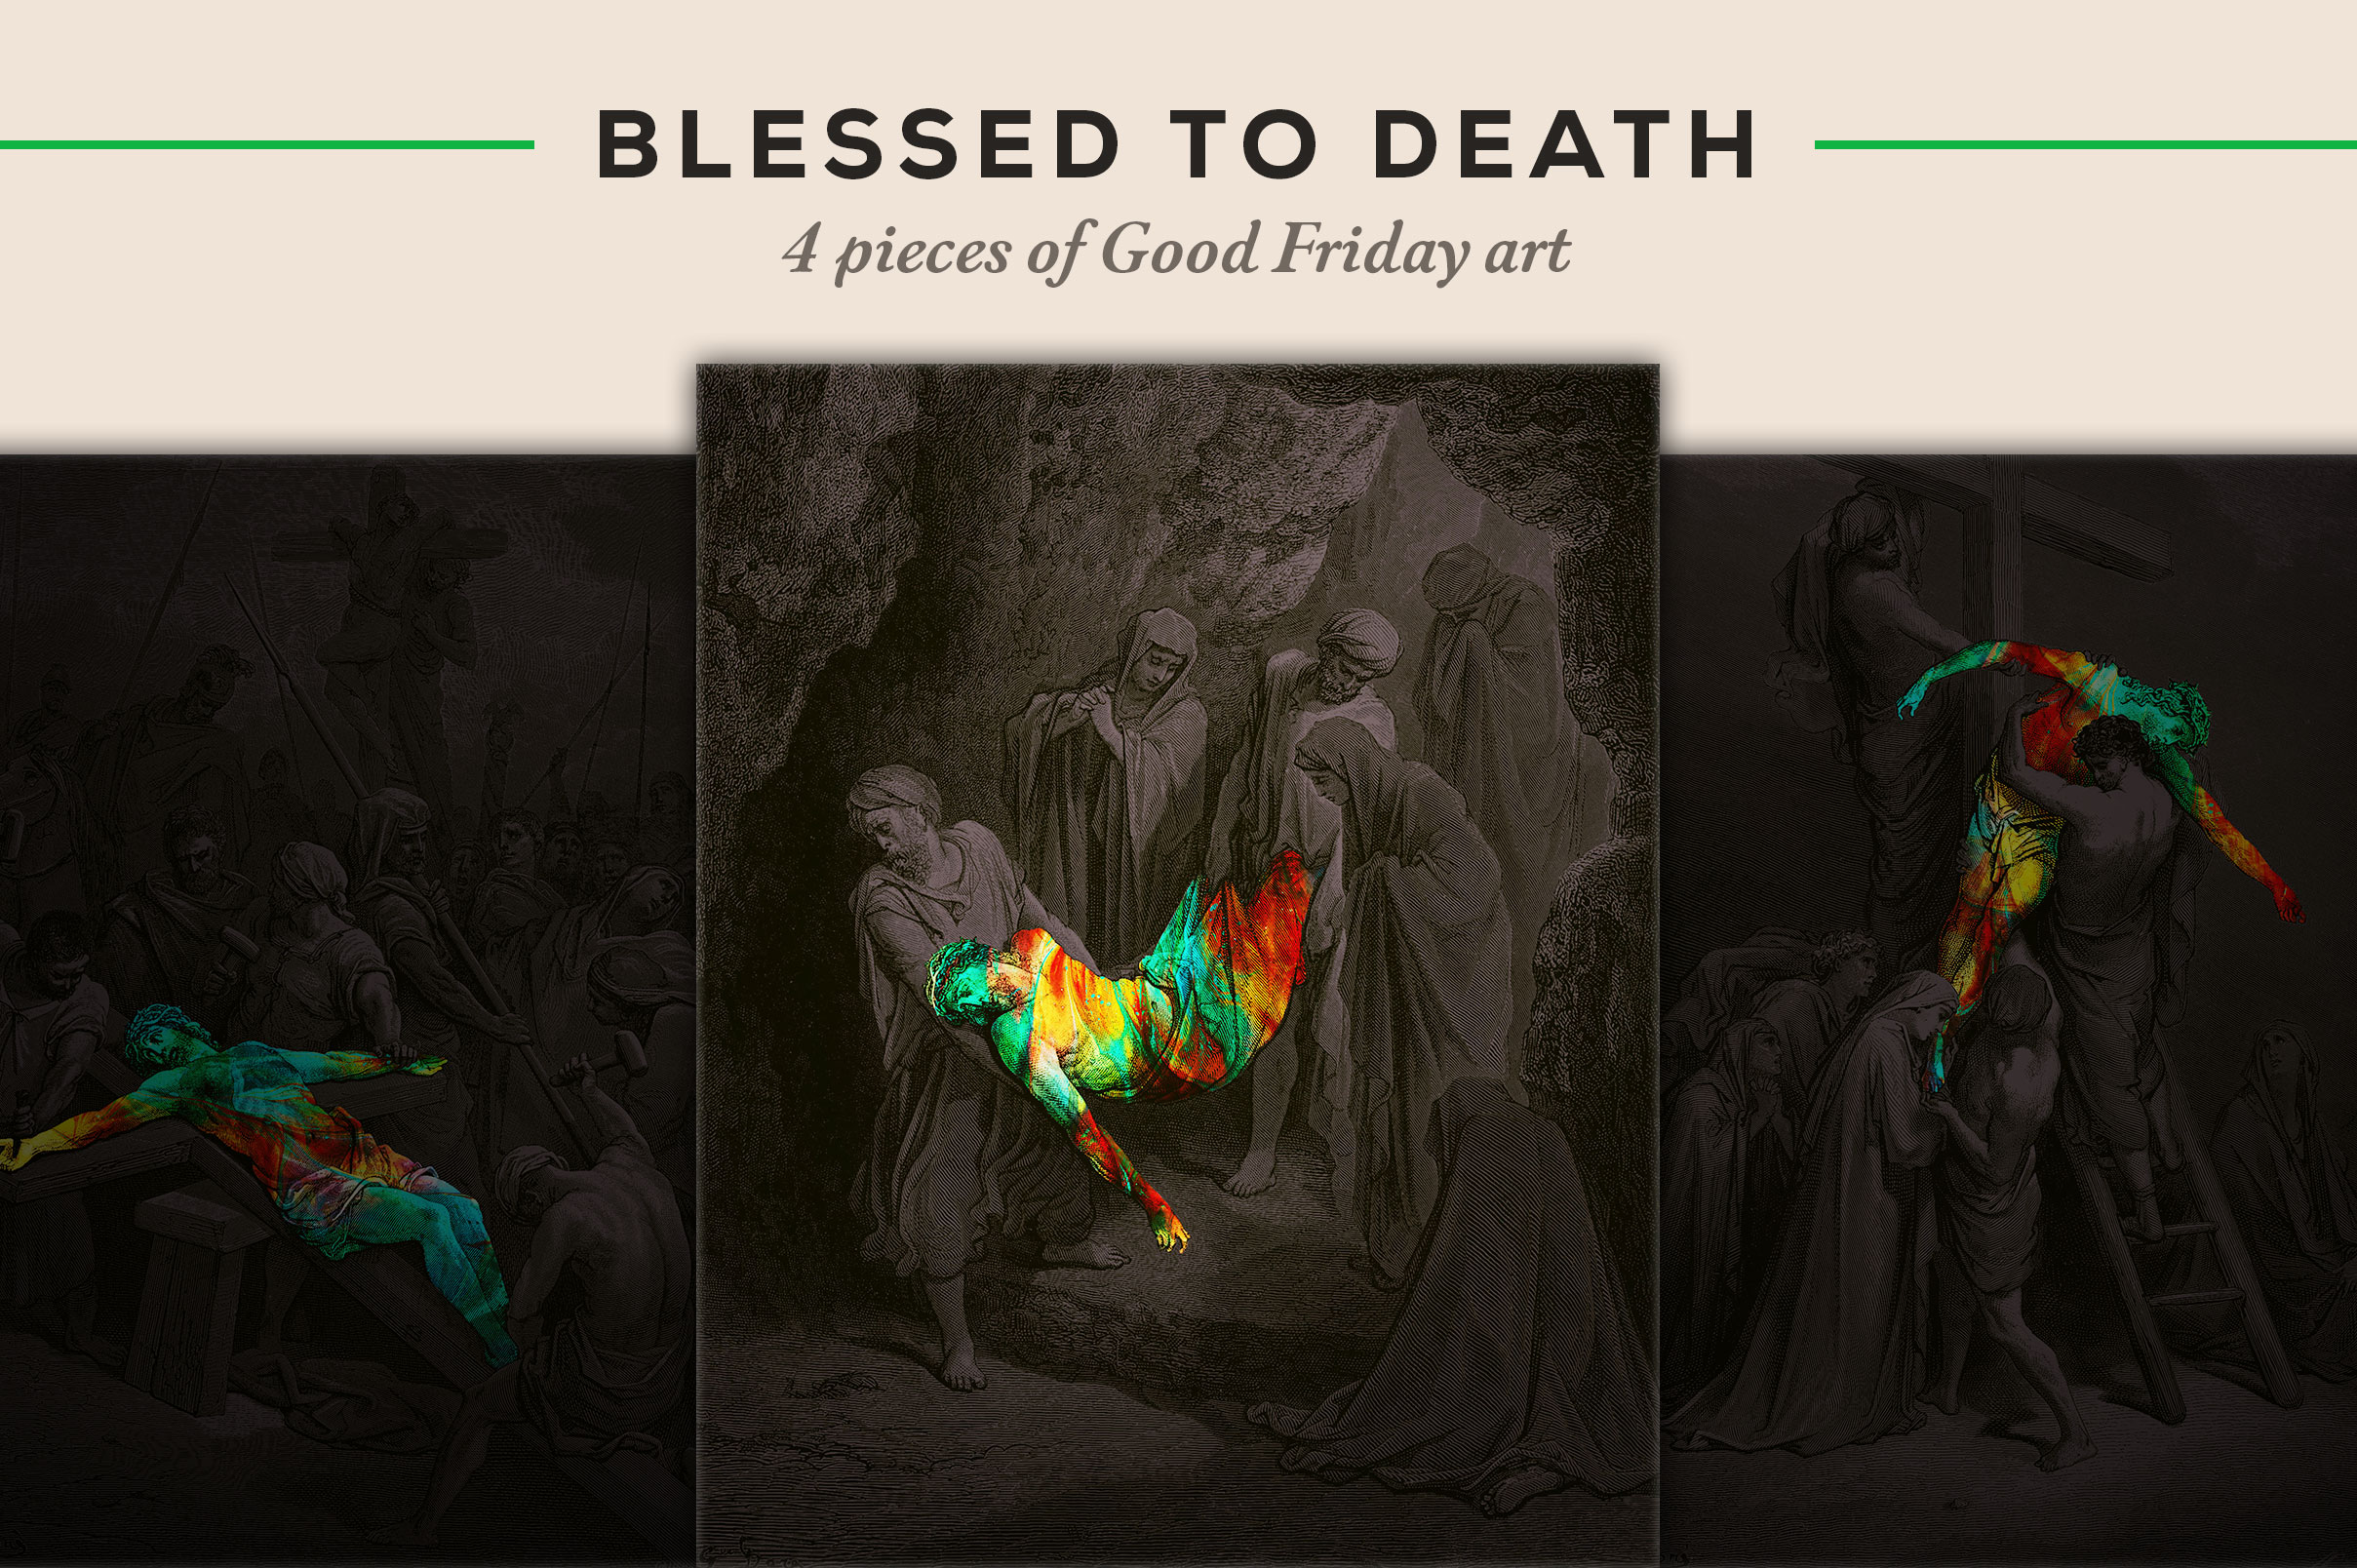 4 pieces of Good Friday art